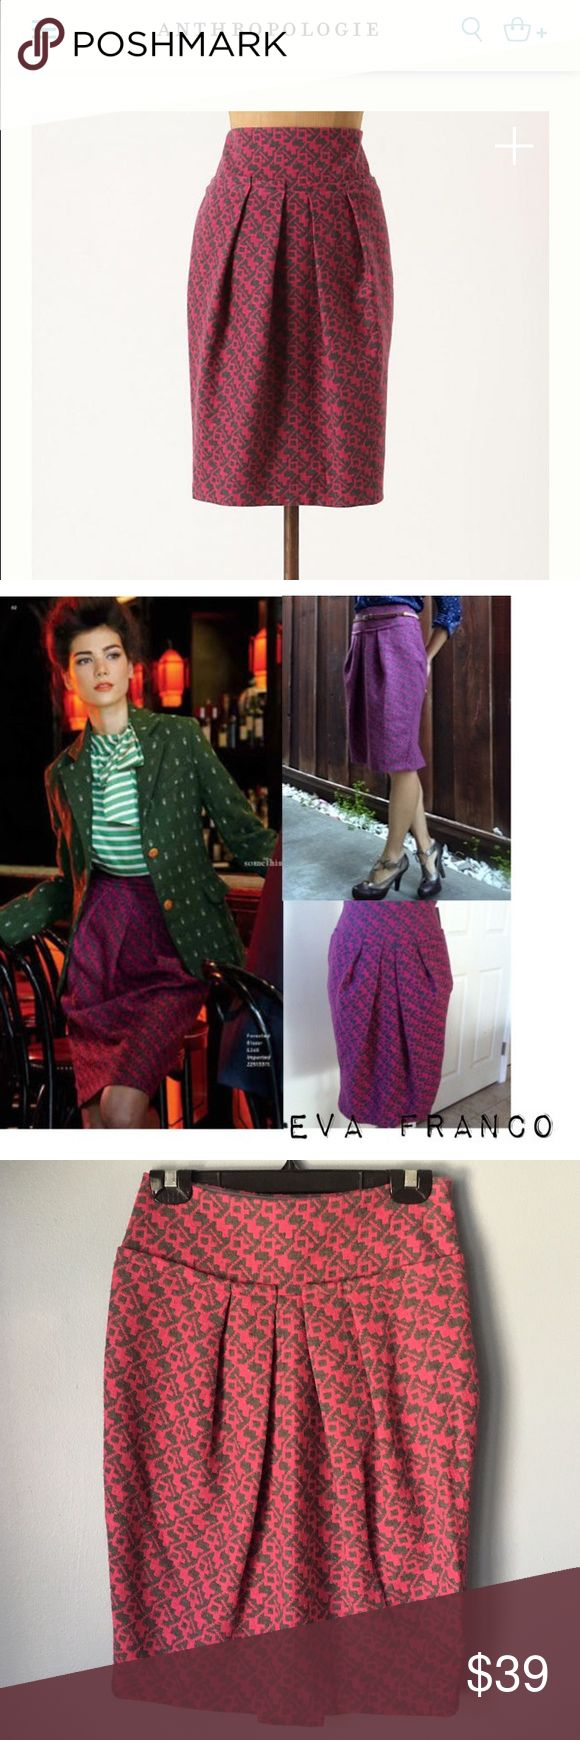 """Anthropologie Eva Franco """"Shirr and Pleat"""" Skirt So gorgeous and flattering! Color most accurate in stock photo - my lighting makes it look much lighter but it's a gorgeous deep magenta and grey. EEUC. Anthropologie Skirts Pencil"""